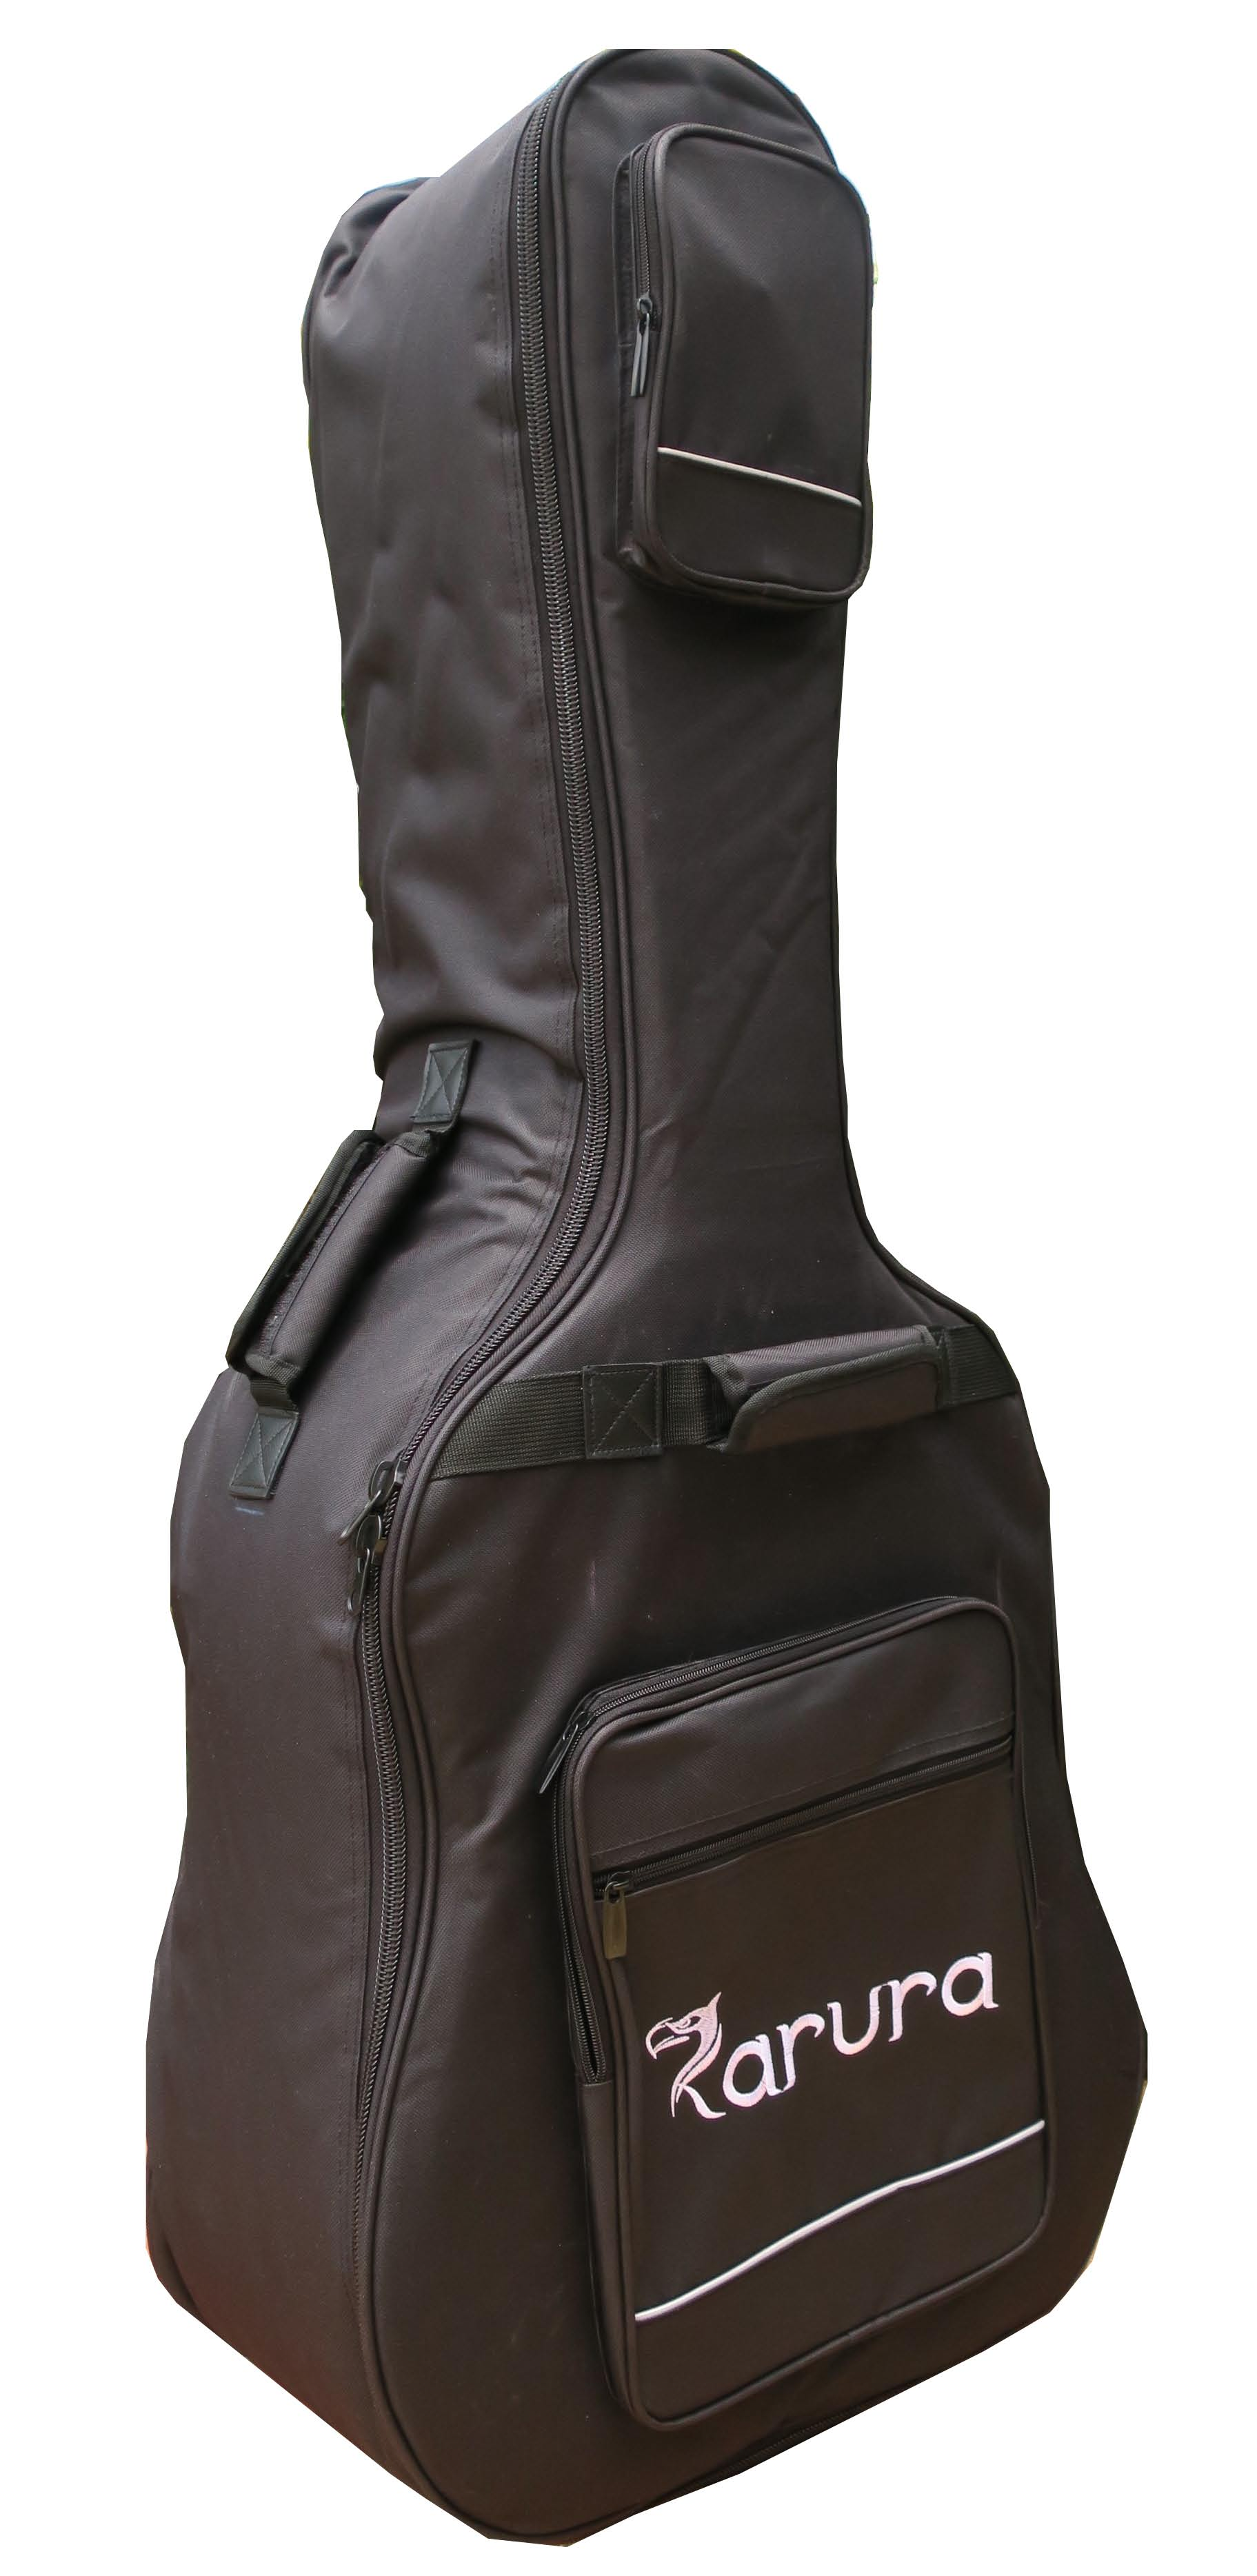 Cover case - classical case